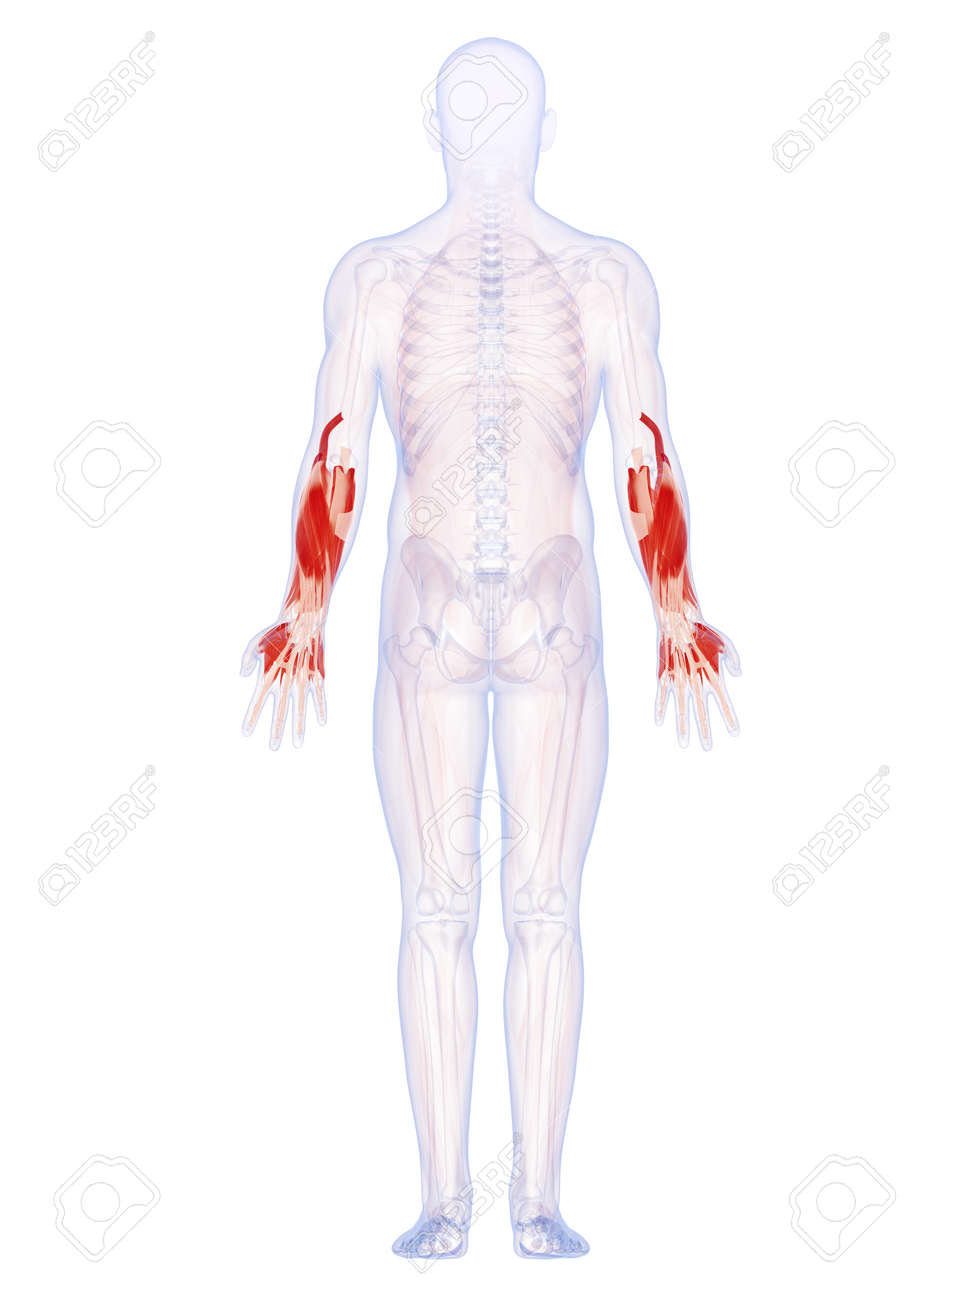 3d Rendered Illustration Of The Lower Arm Muscles Stock Photo ...